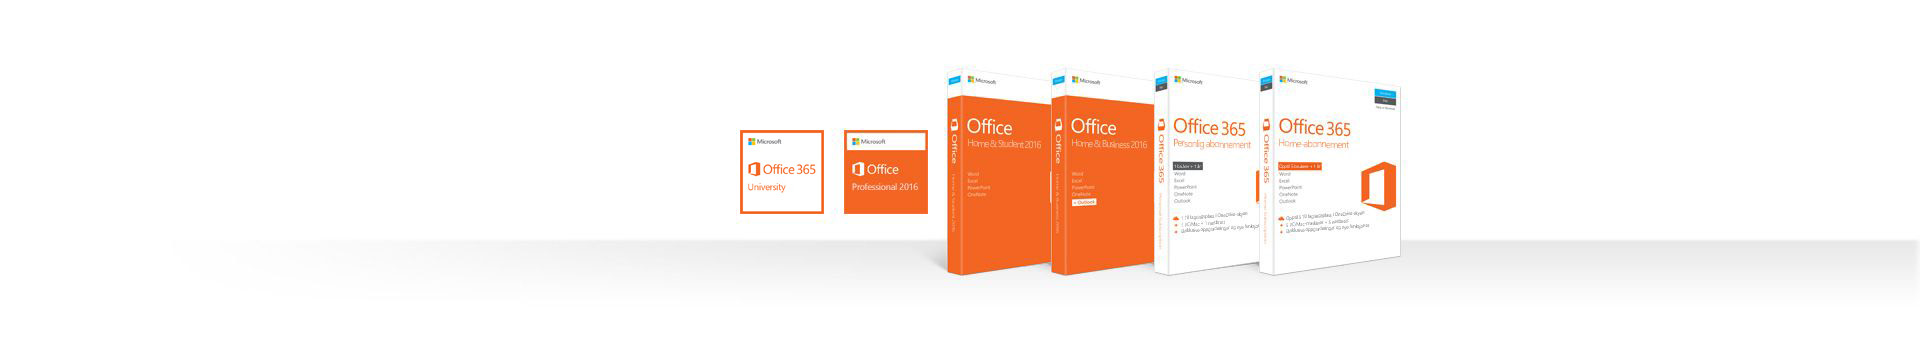 En rad med bokser for Office 2016- og Office 365-produkter for PC